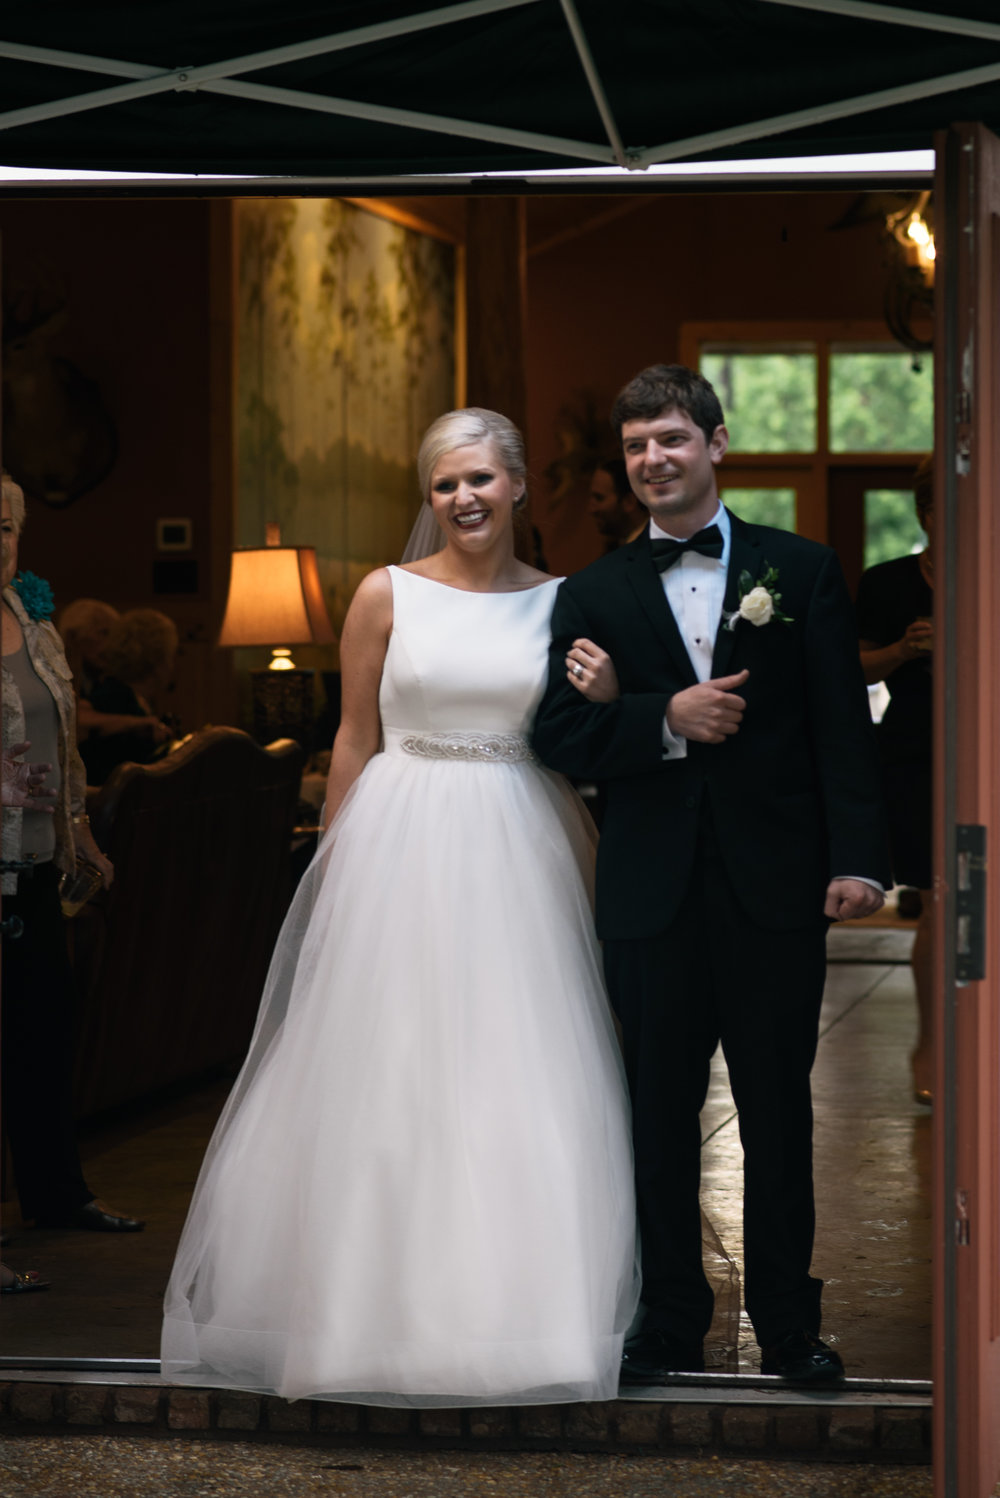 ali-and-jared-savannah-georgia-may-2017-wedding-meg-hill-photo-(559of760).jpg